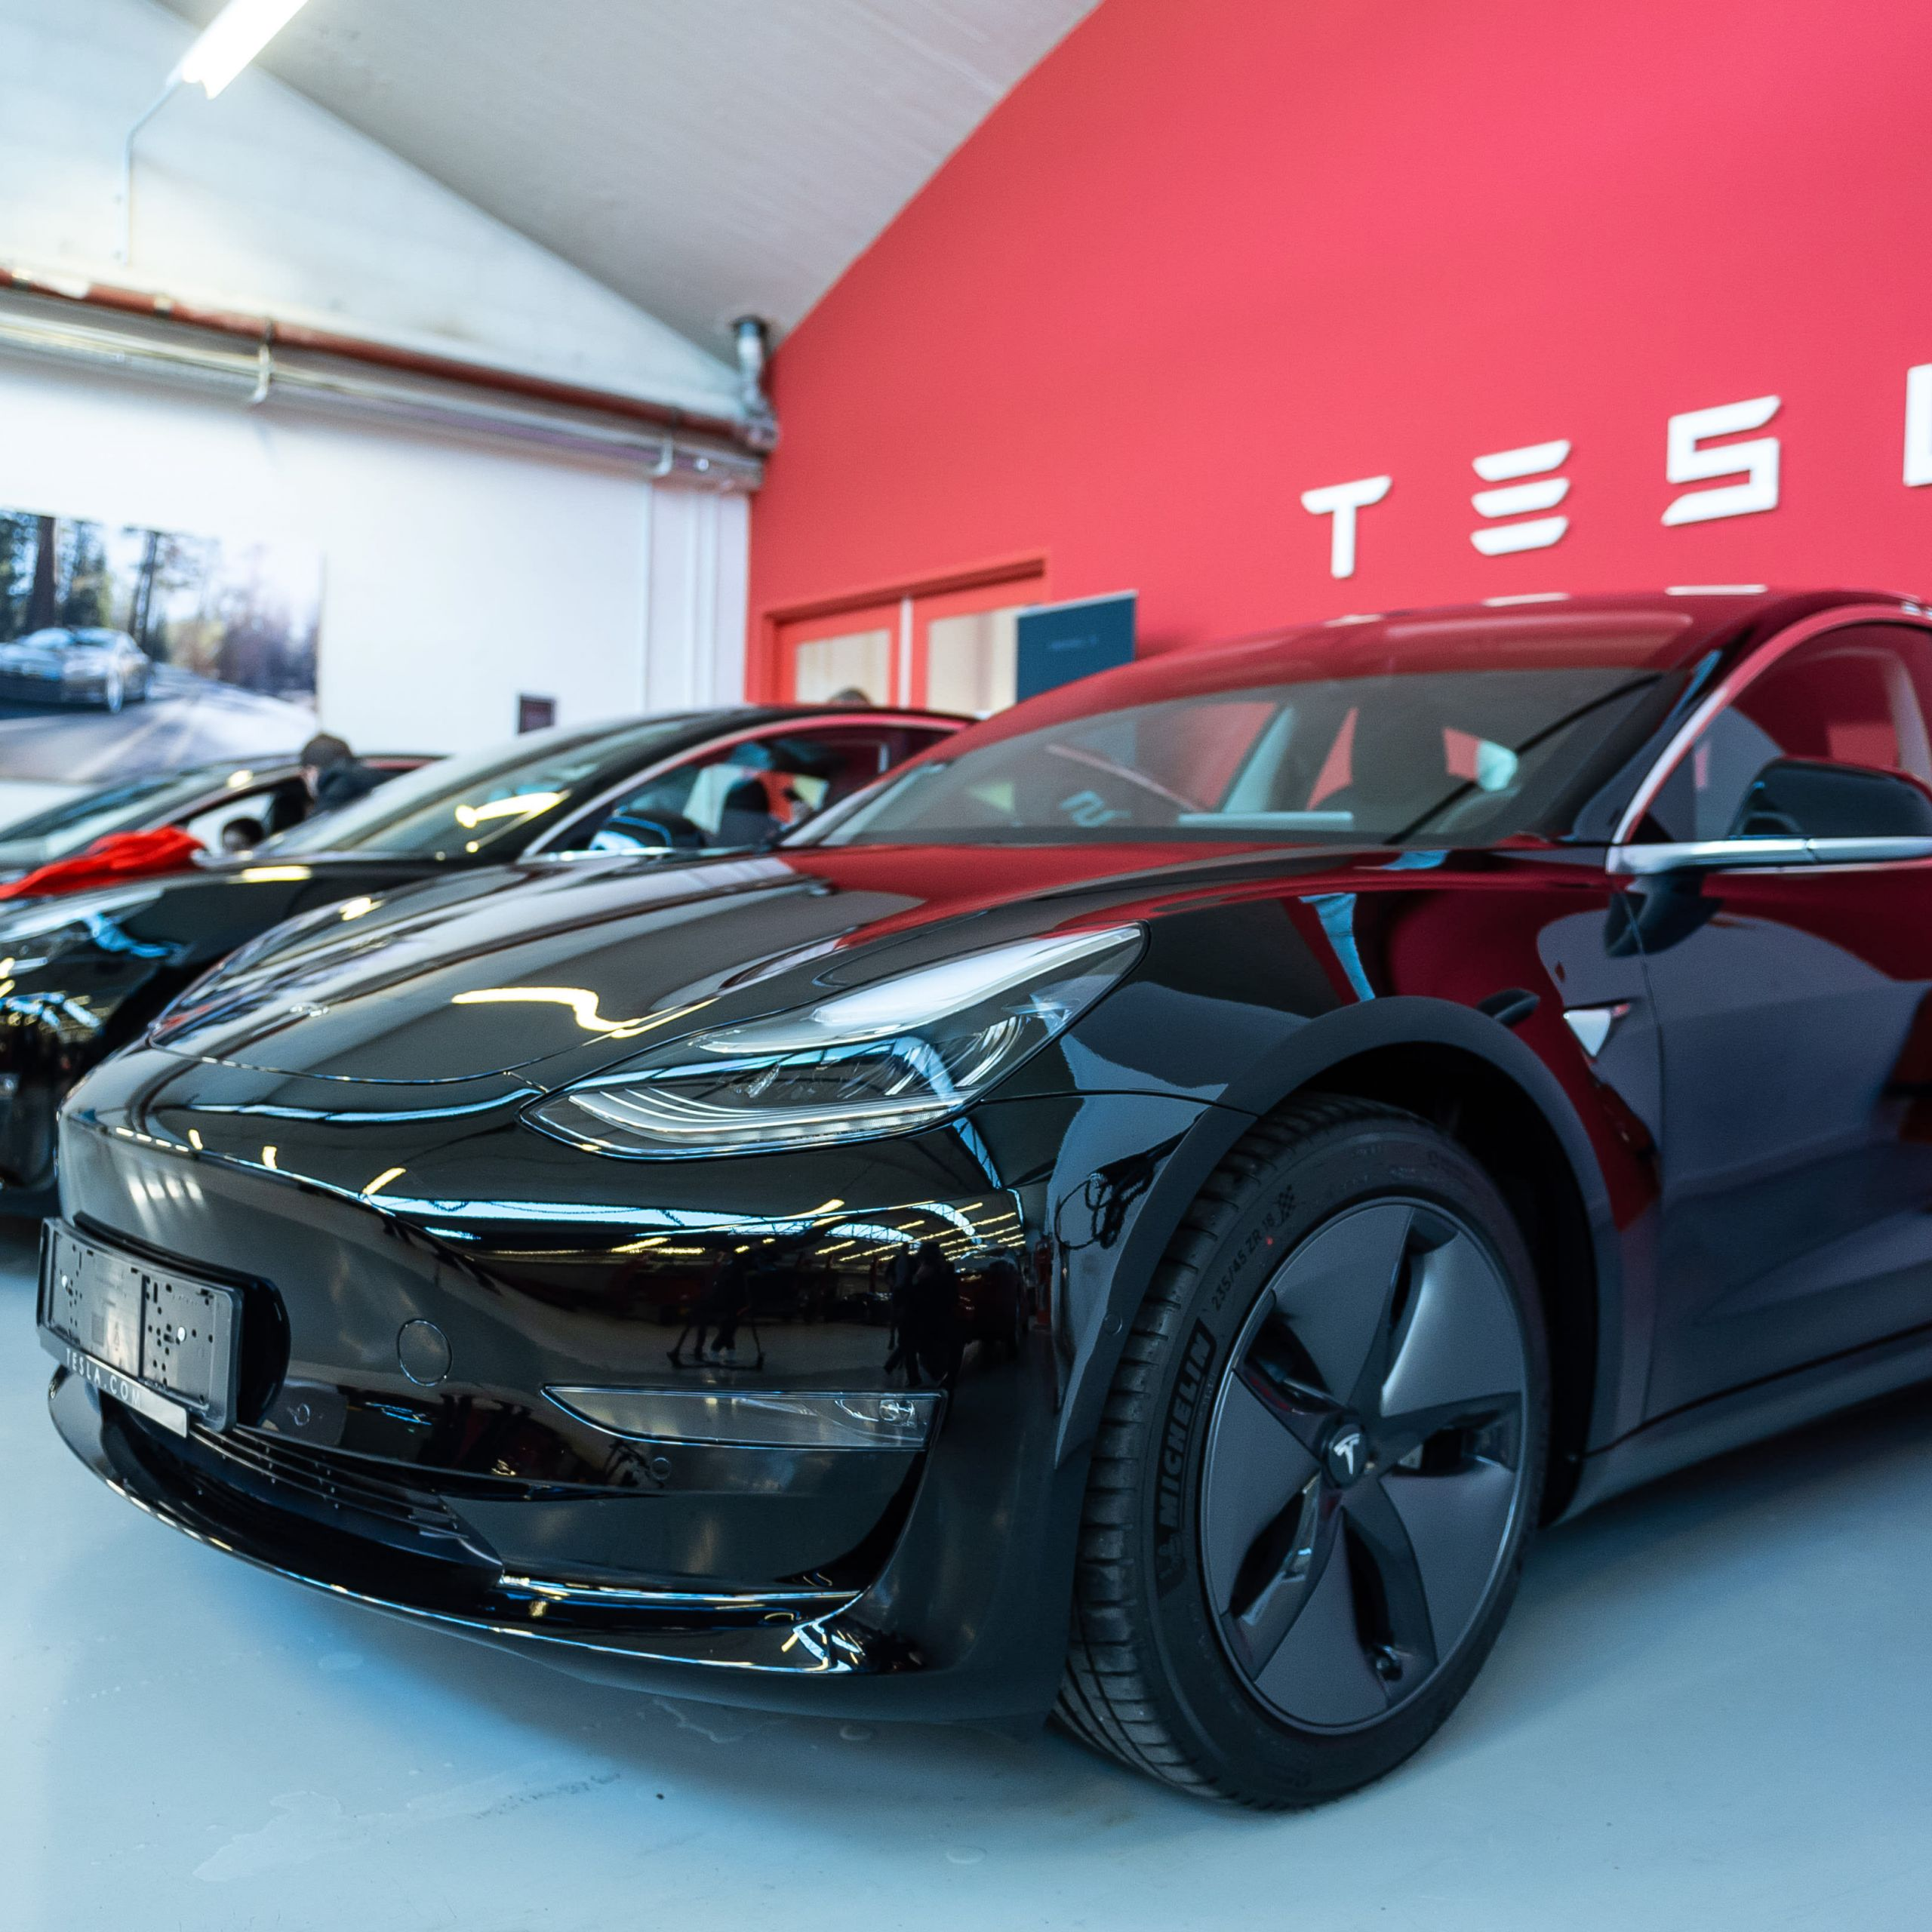 How Much Tesla Truck Cost Inspirational Tesla Tsla 3q 2019 Production and Delivery Numbers